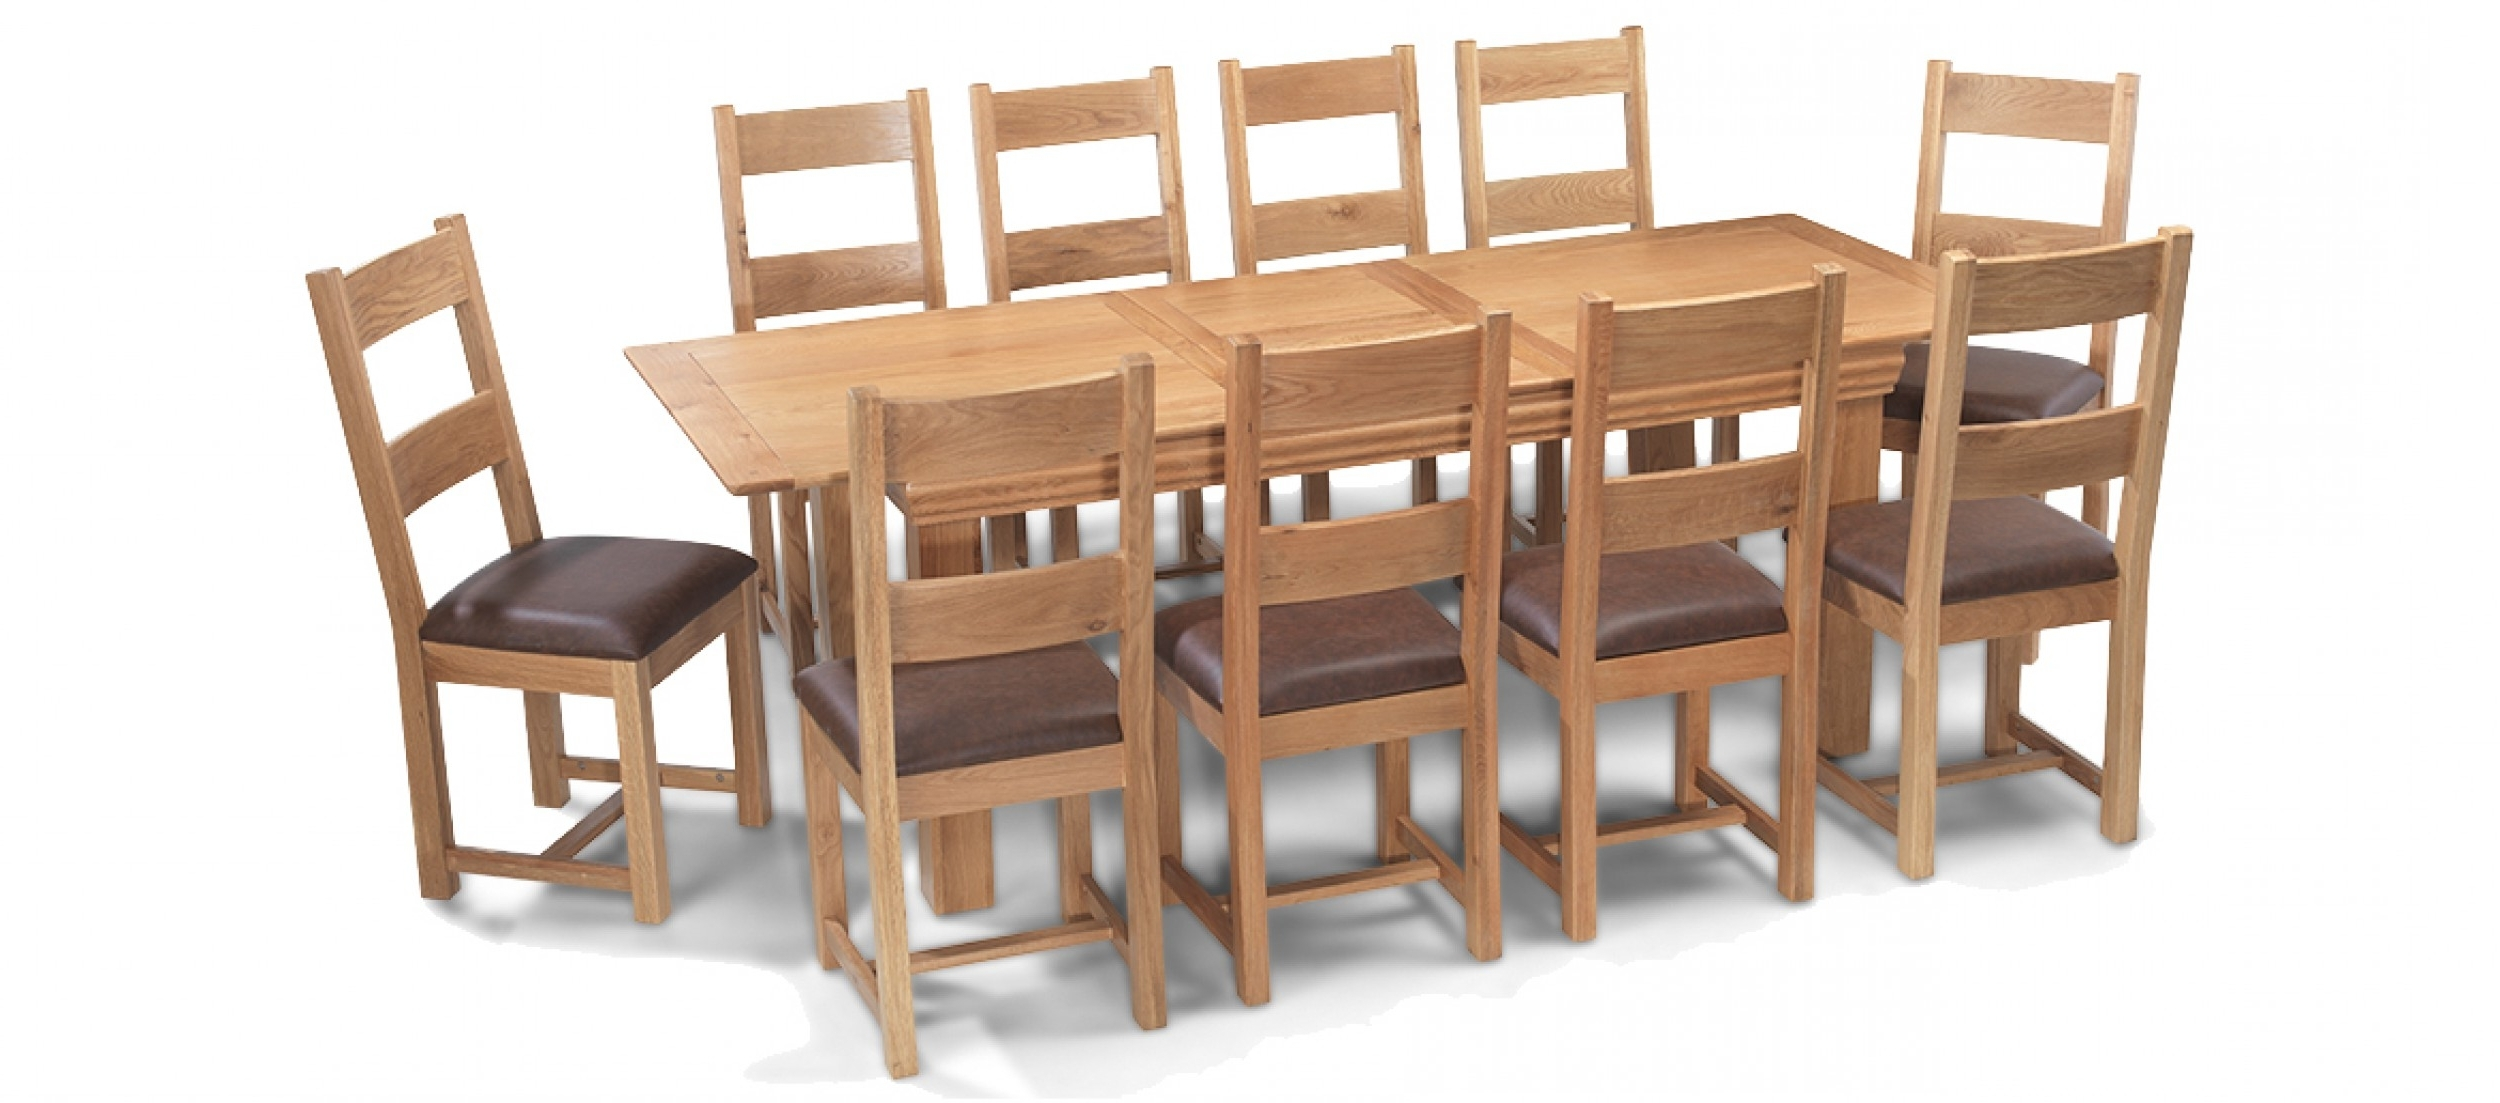 Constance Oak 180 230 Cm Extending Dining Table And 10 Chairs For Most Up To Date Extending Dining Table And Chairs (View 7 of 25)